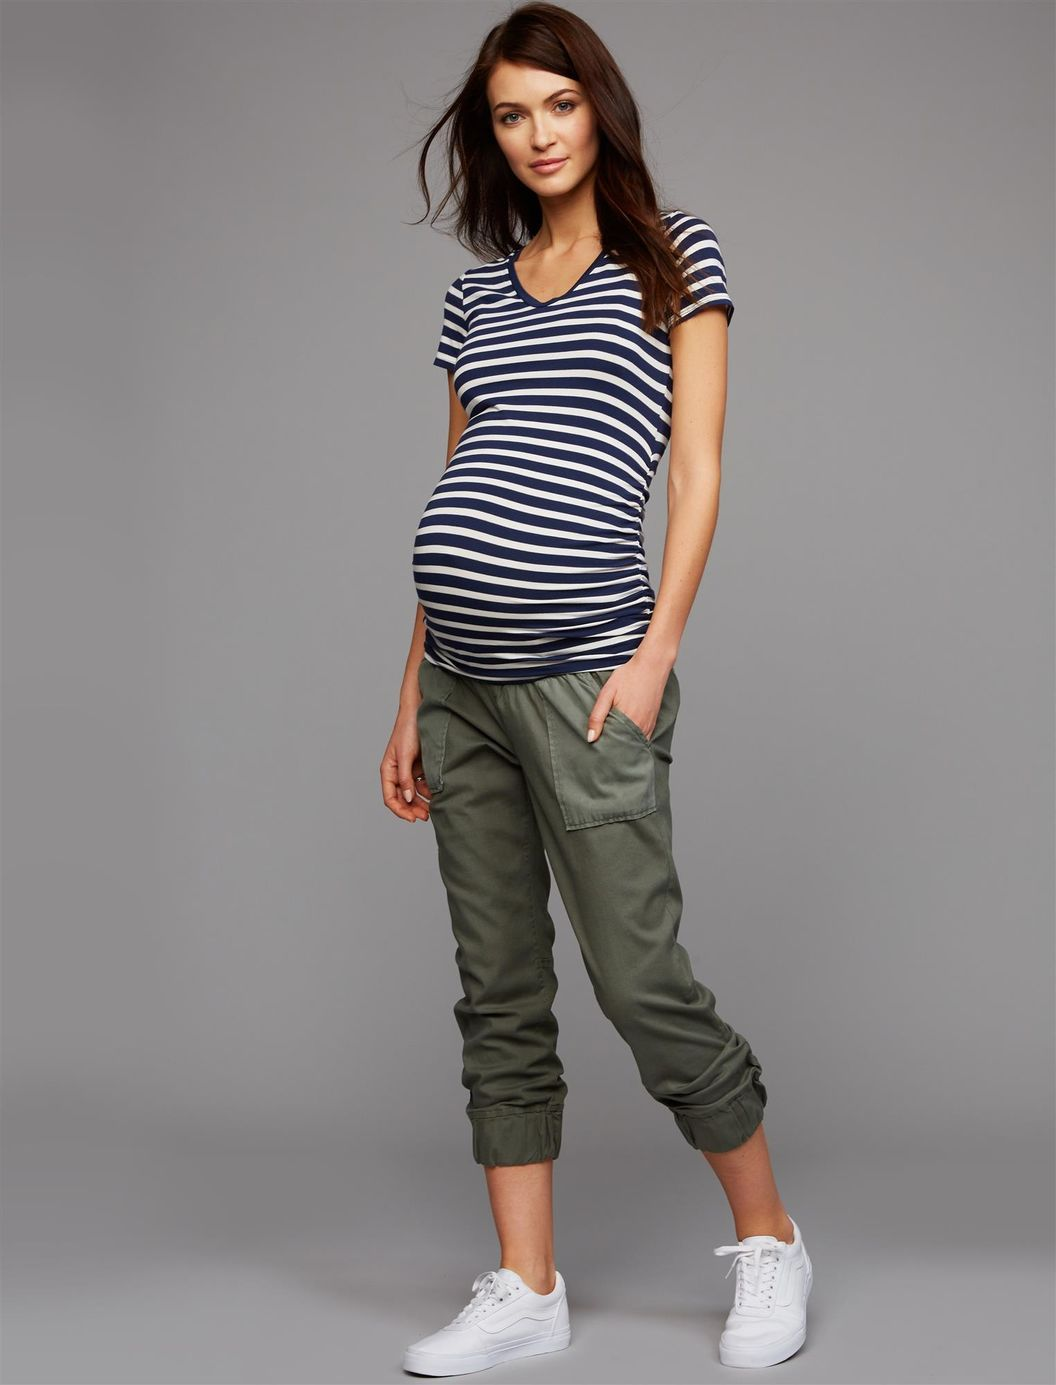 868411c56df9a Under Belly Canvas Jogger Maternity Pants | A Pea in the Pod Maternity